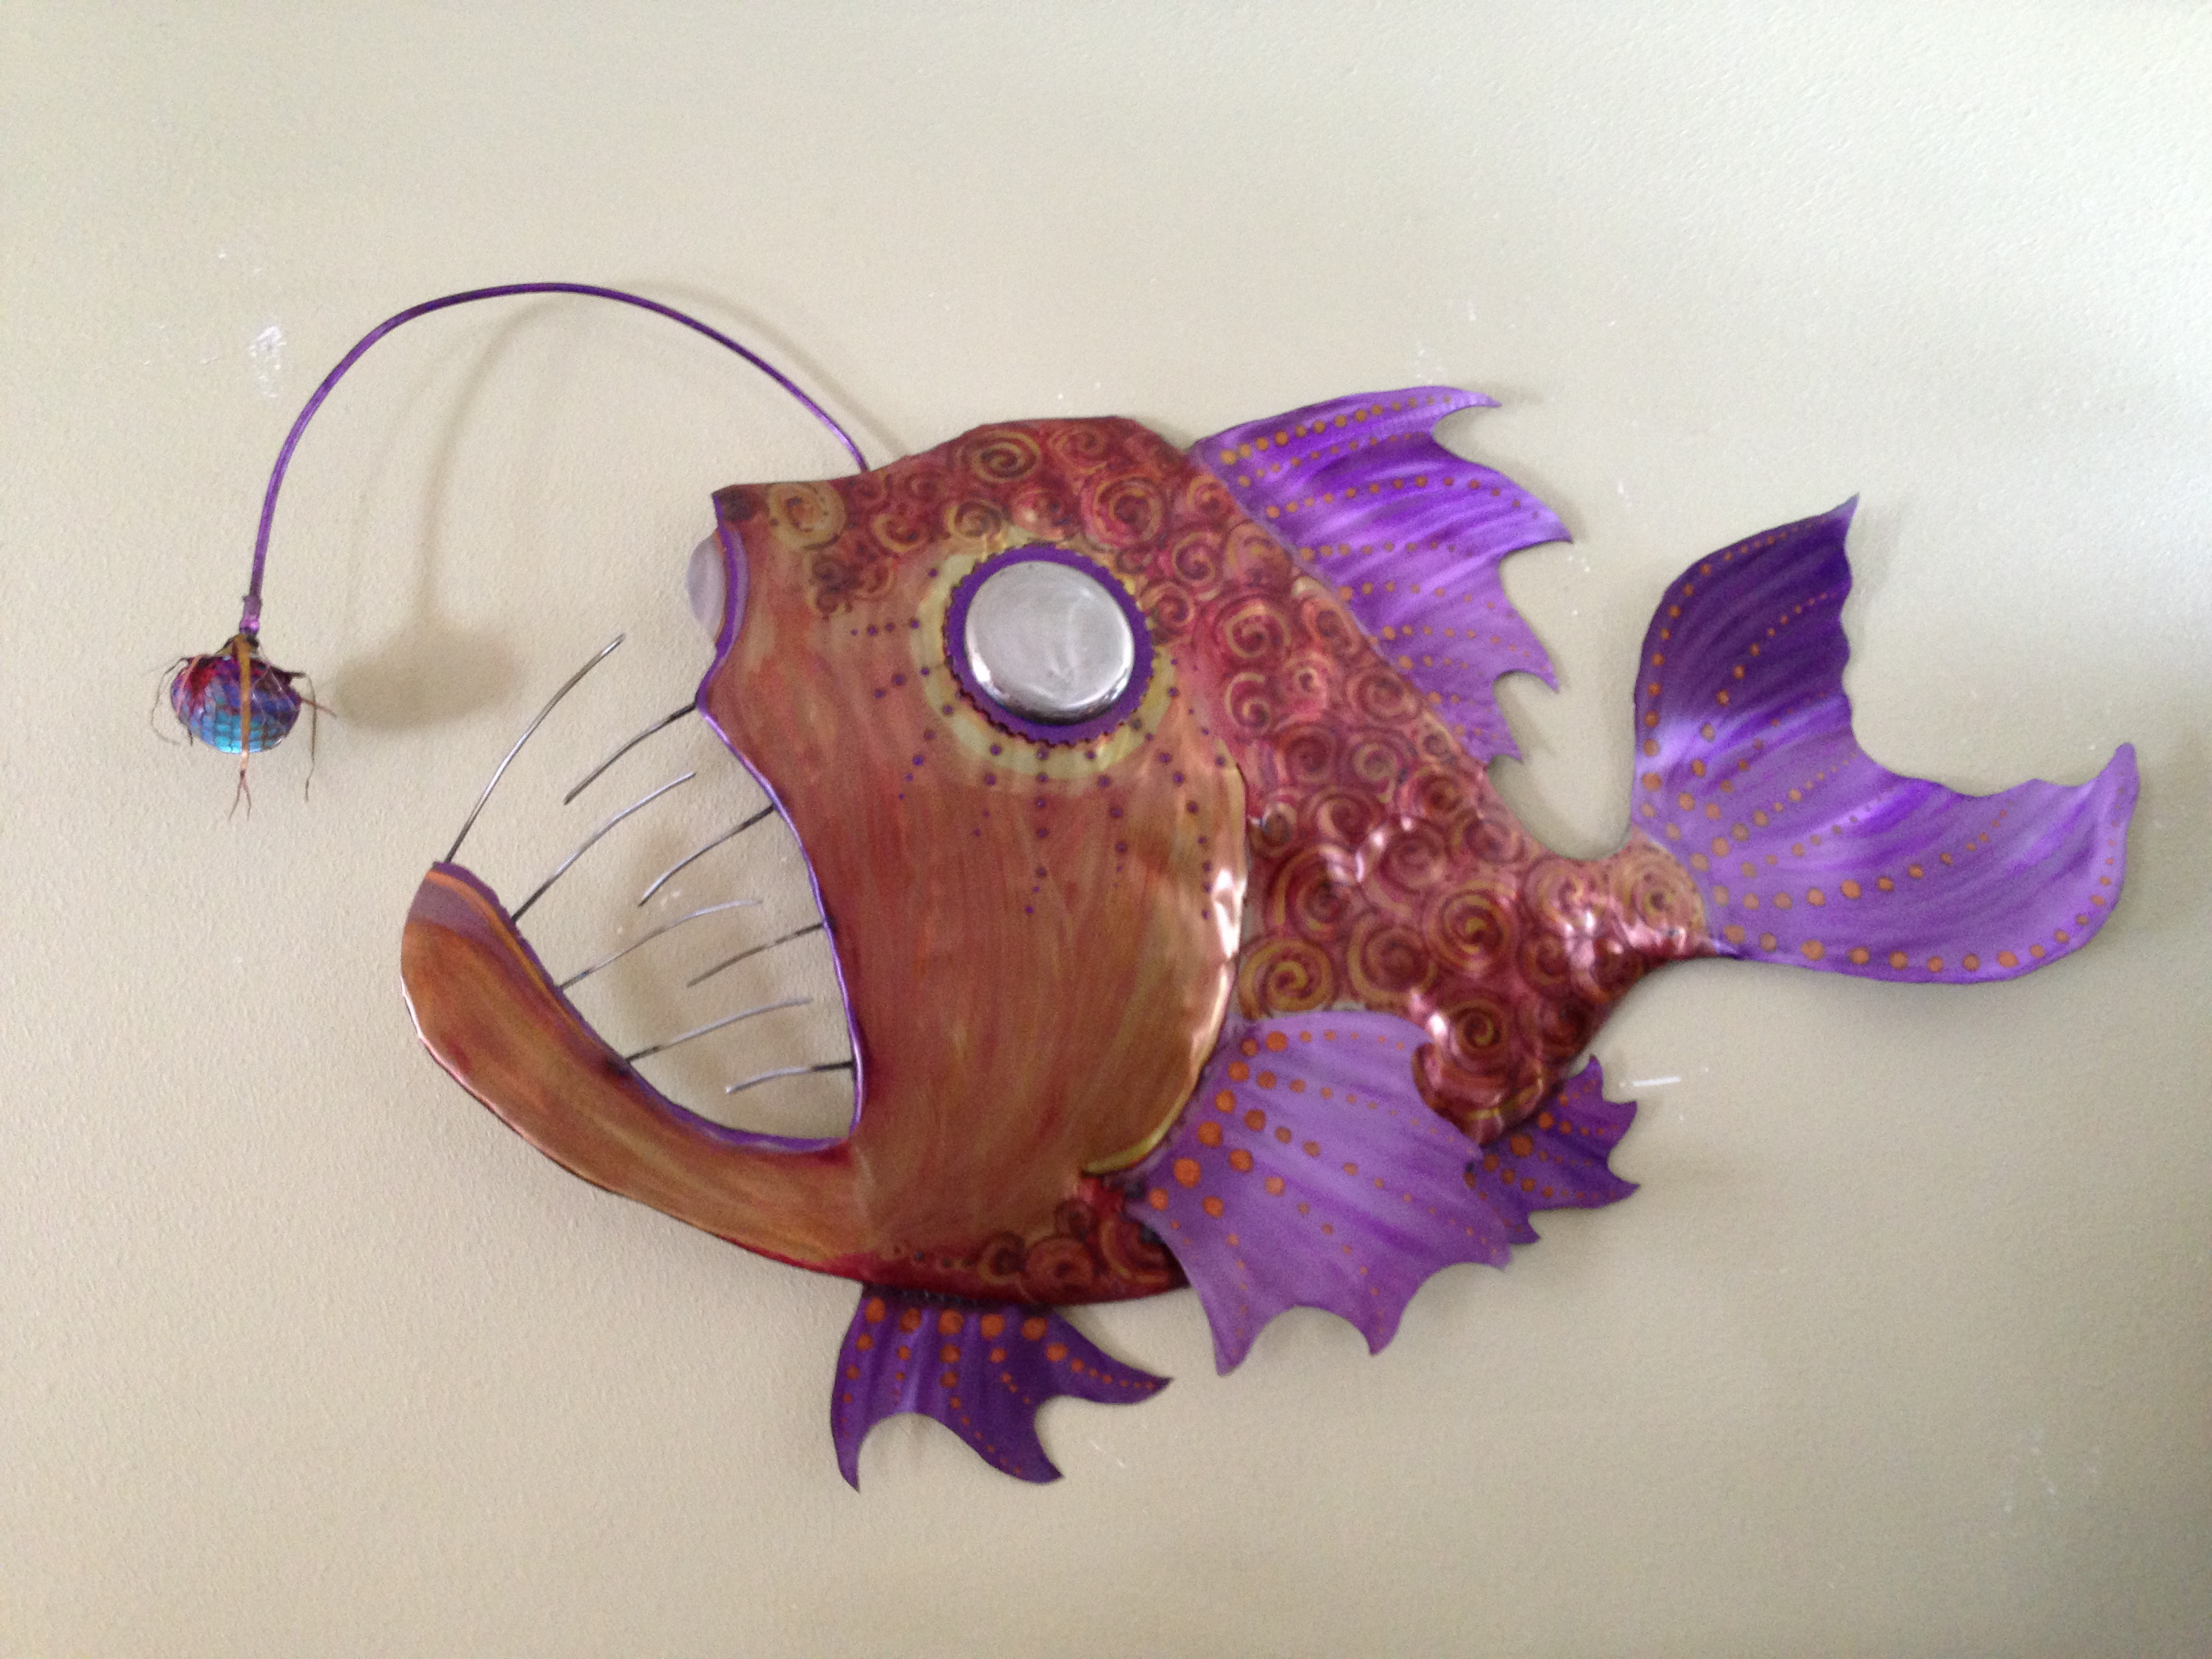 angler fish with working light